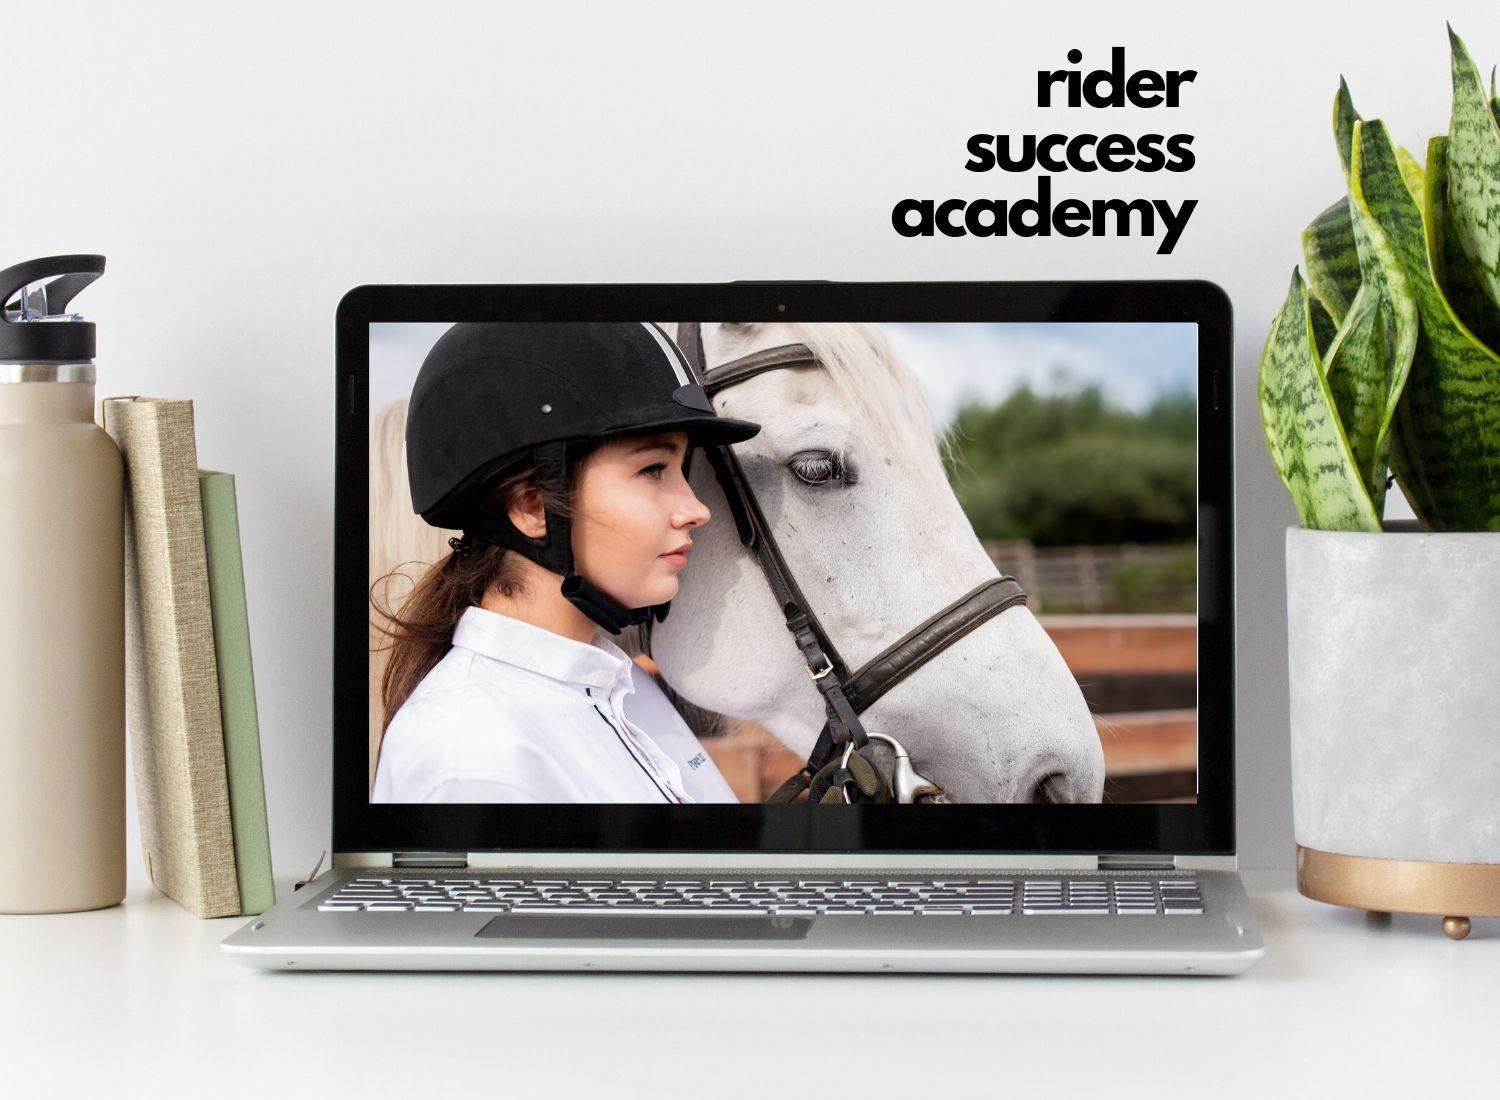 Rider Success Academy and Equestion